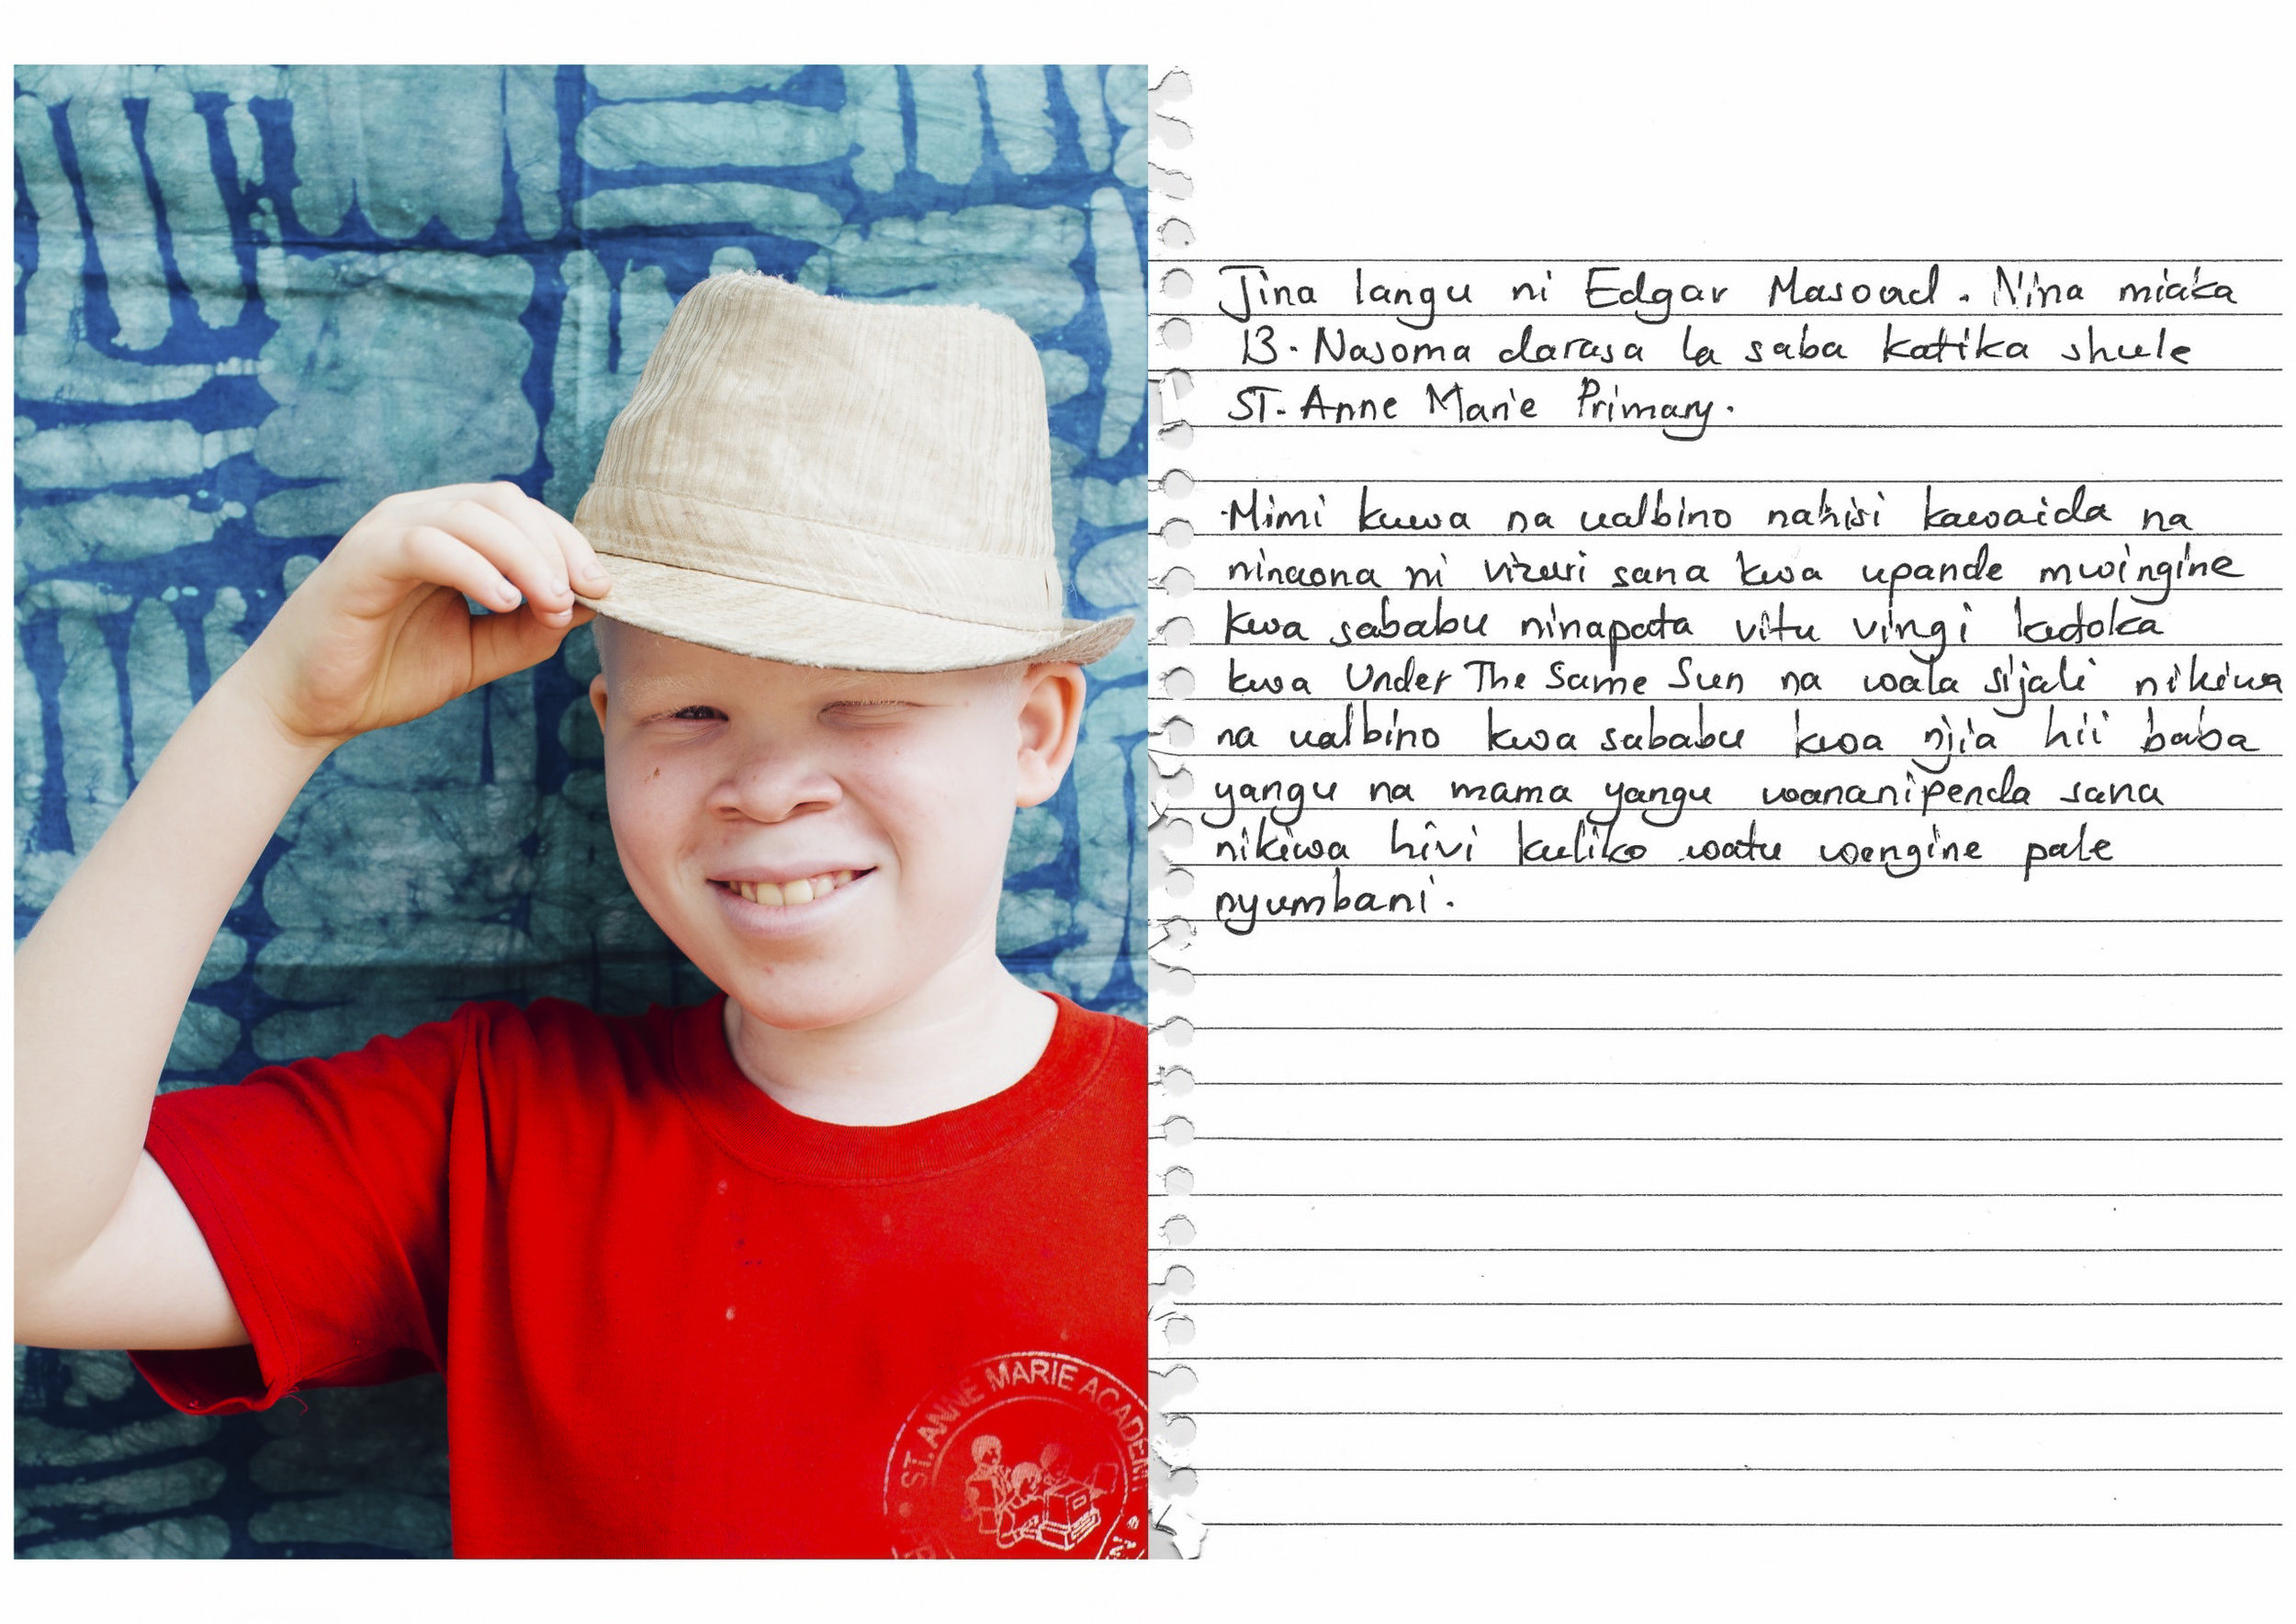 My name is Edgar Masoud. I am 13 years old. I am in standard 7 at St. Anne Marie Primary School.    For me to have albinism is just a normal feeling, and on the other part I see it as a good thing because I get much support from Under the Same Sun. Likewise, I don't feel bad to have albinism because through this condition my parents love me more than anybody else at home.